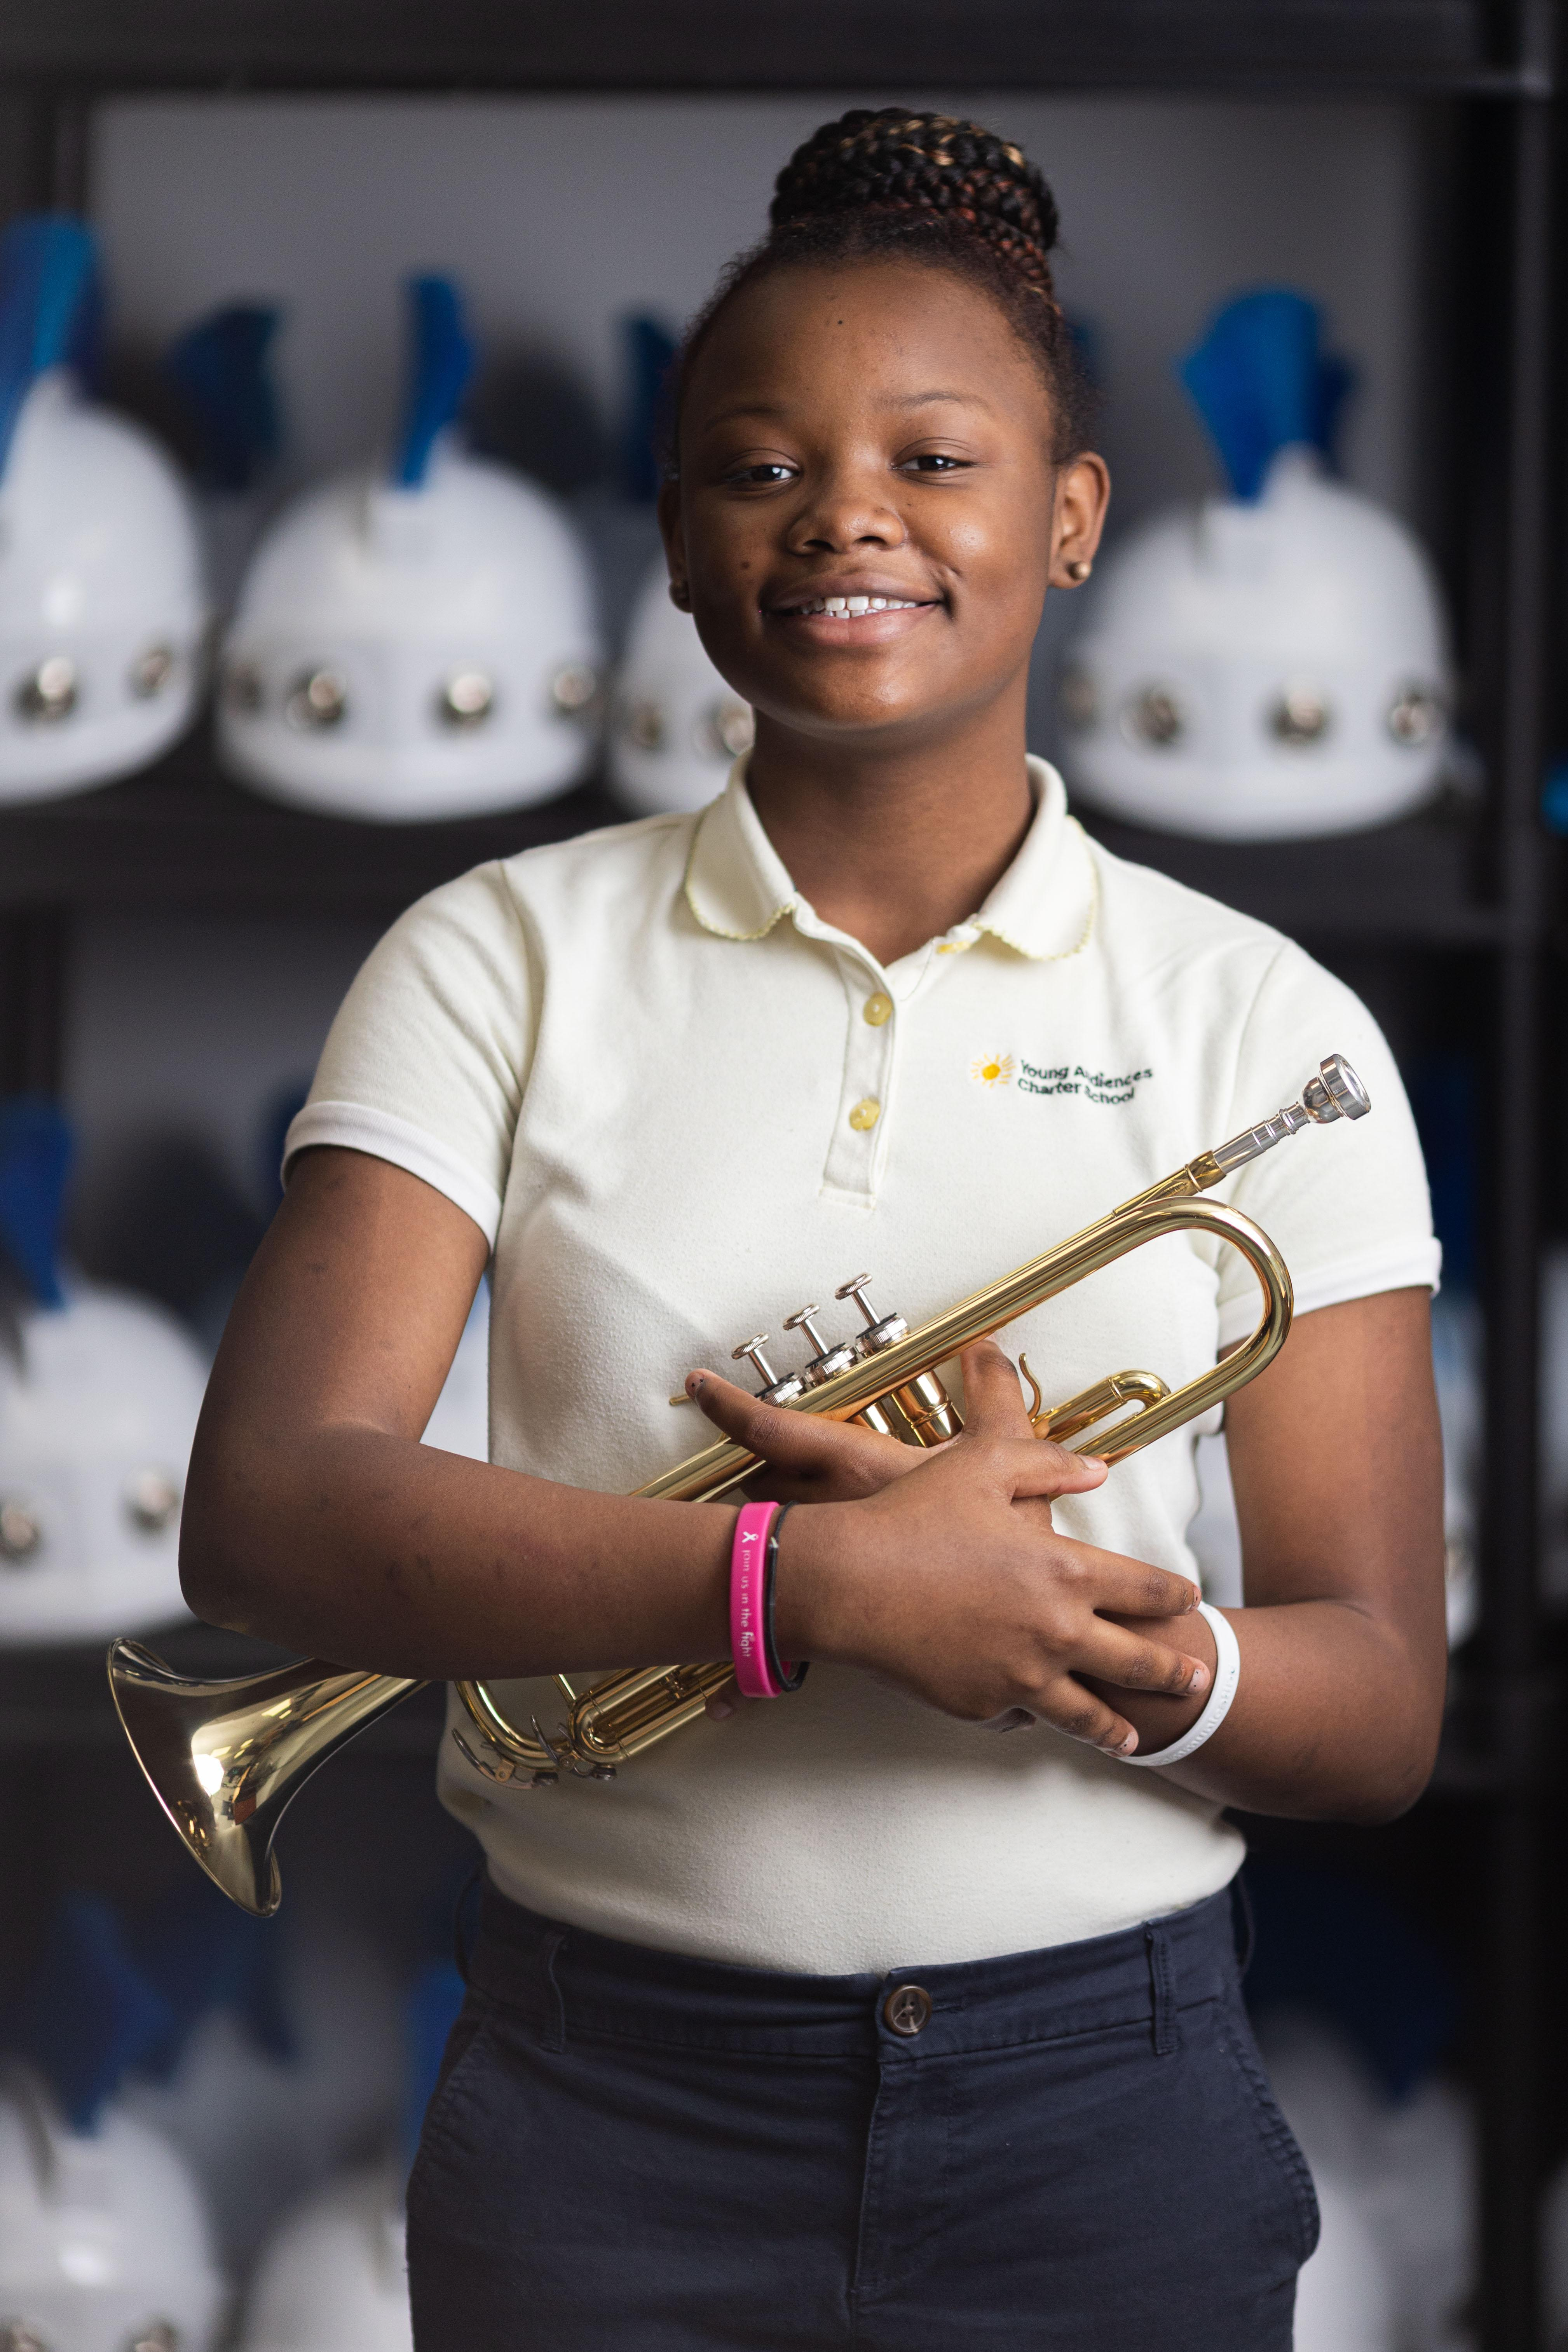 Student with Trumpet